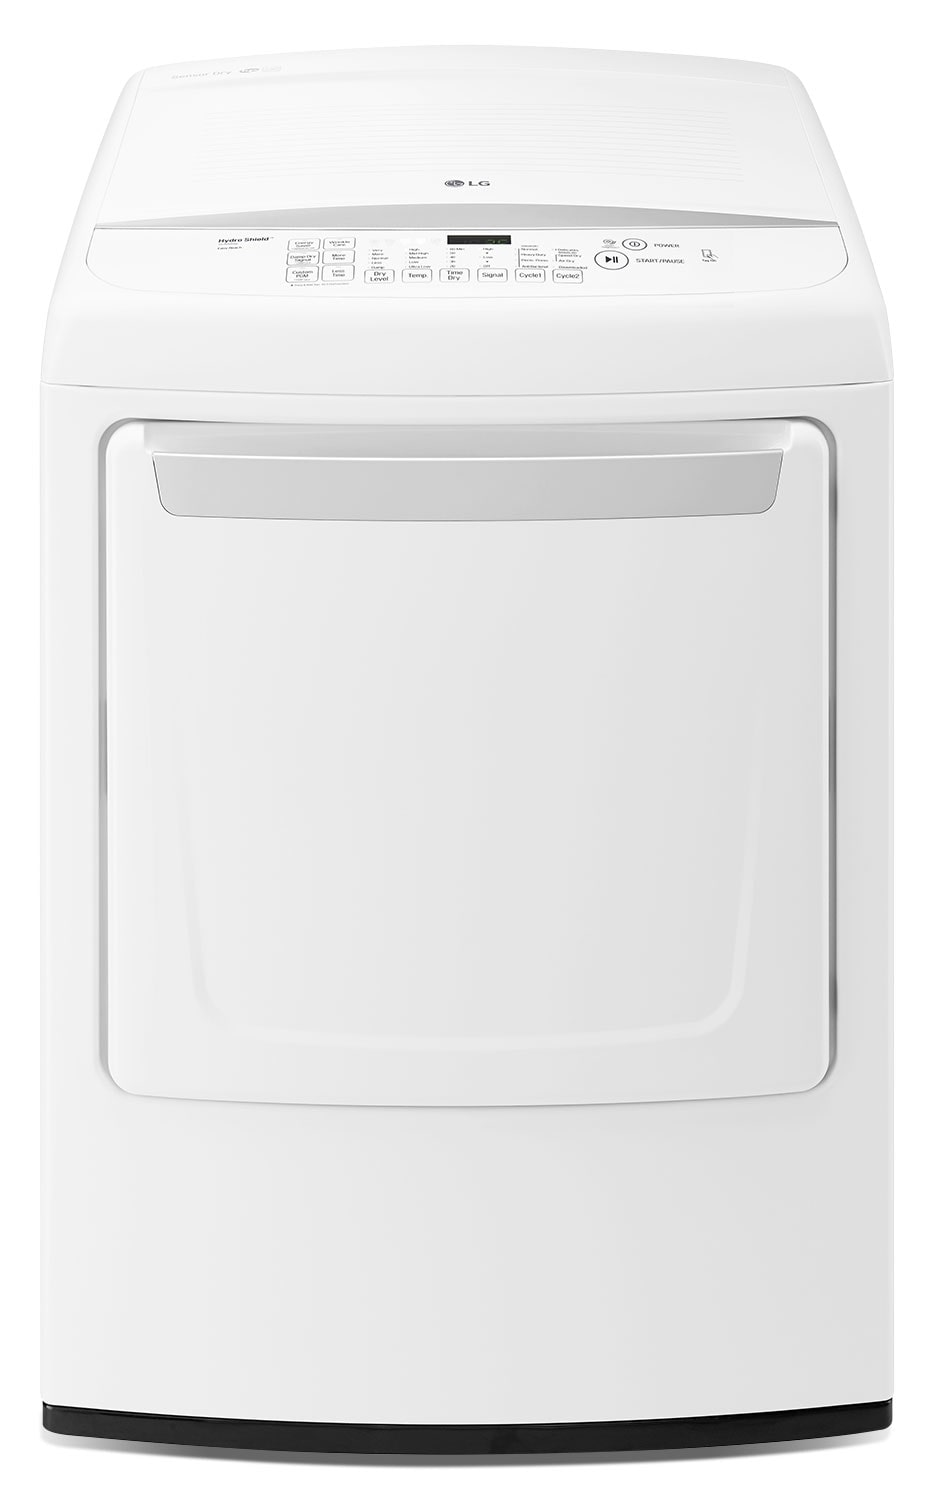 Washers and Dryers - LG 7.3 Cu. Ft. High-Efficiency Front-Control Electric Dryer with NFC Tag On – White